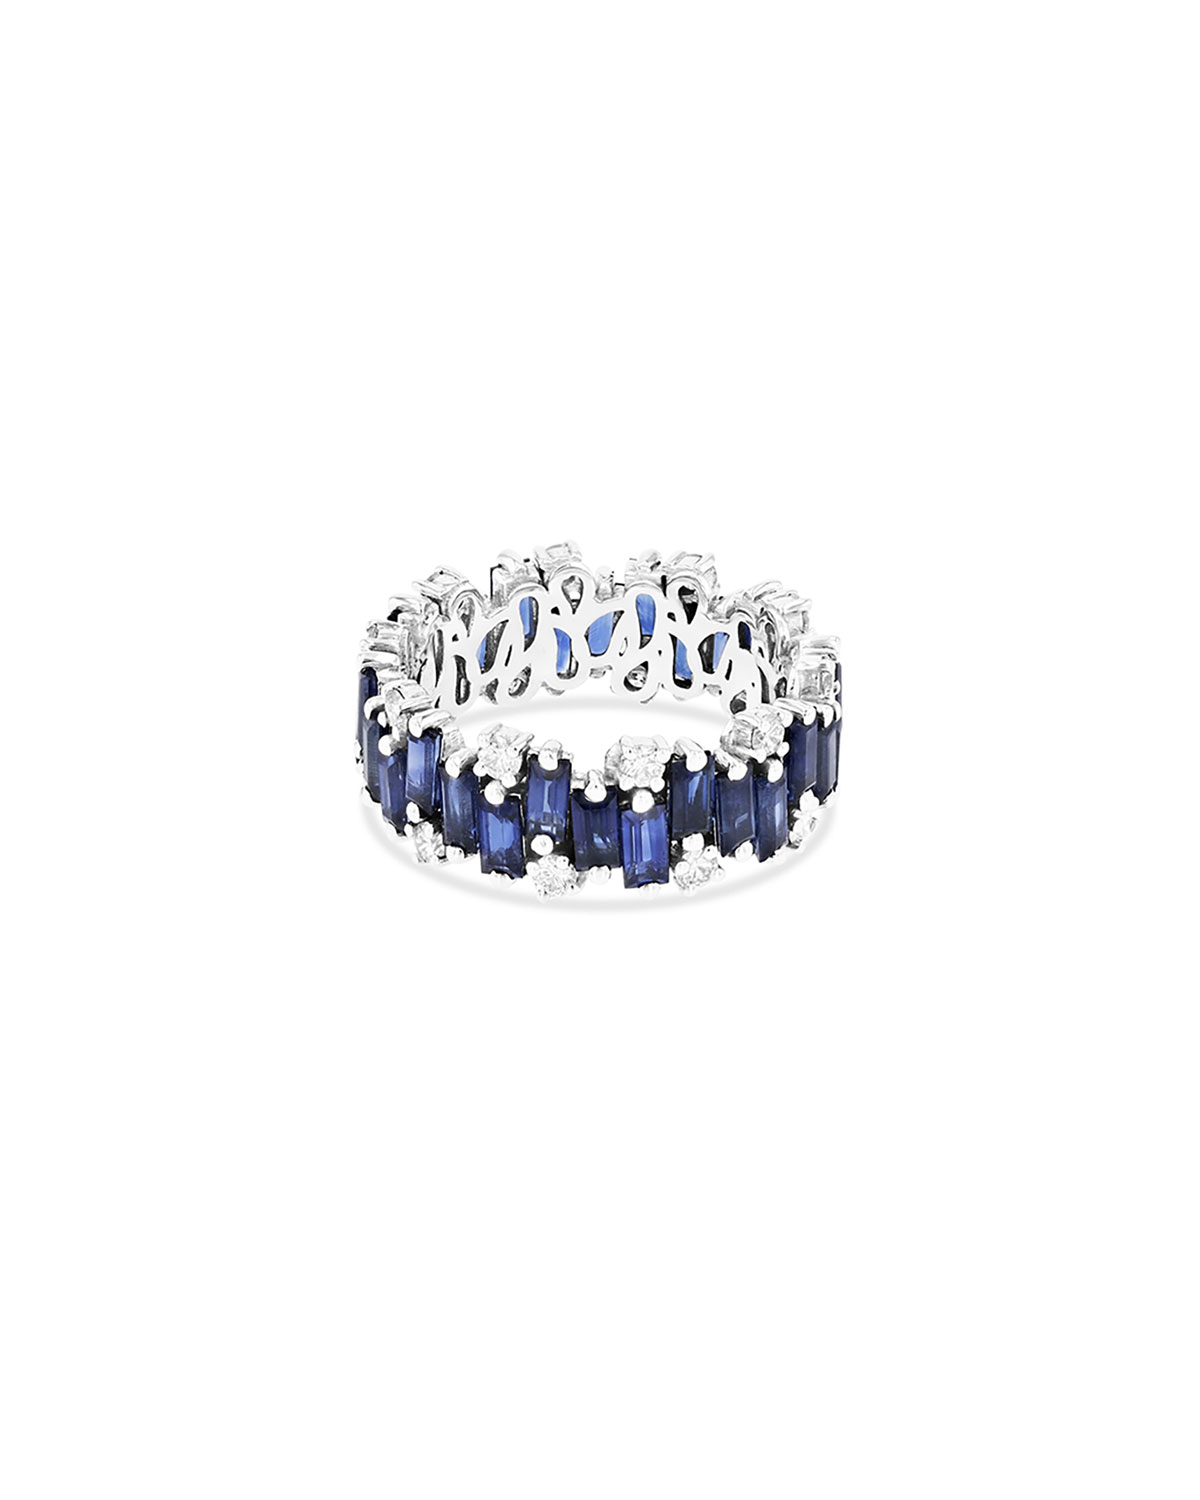 Audrey 18K White Gold Eternity Band Ring with Dark Blue Sapphires & Diamonds